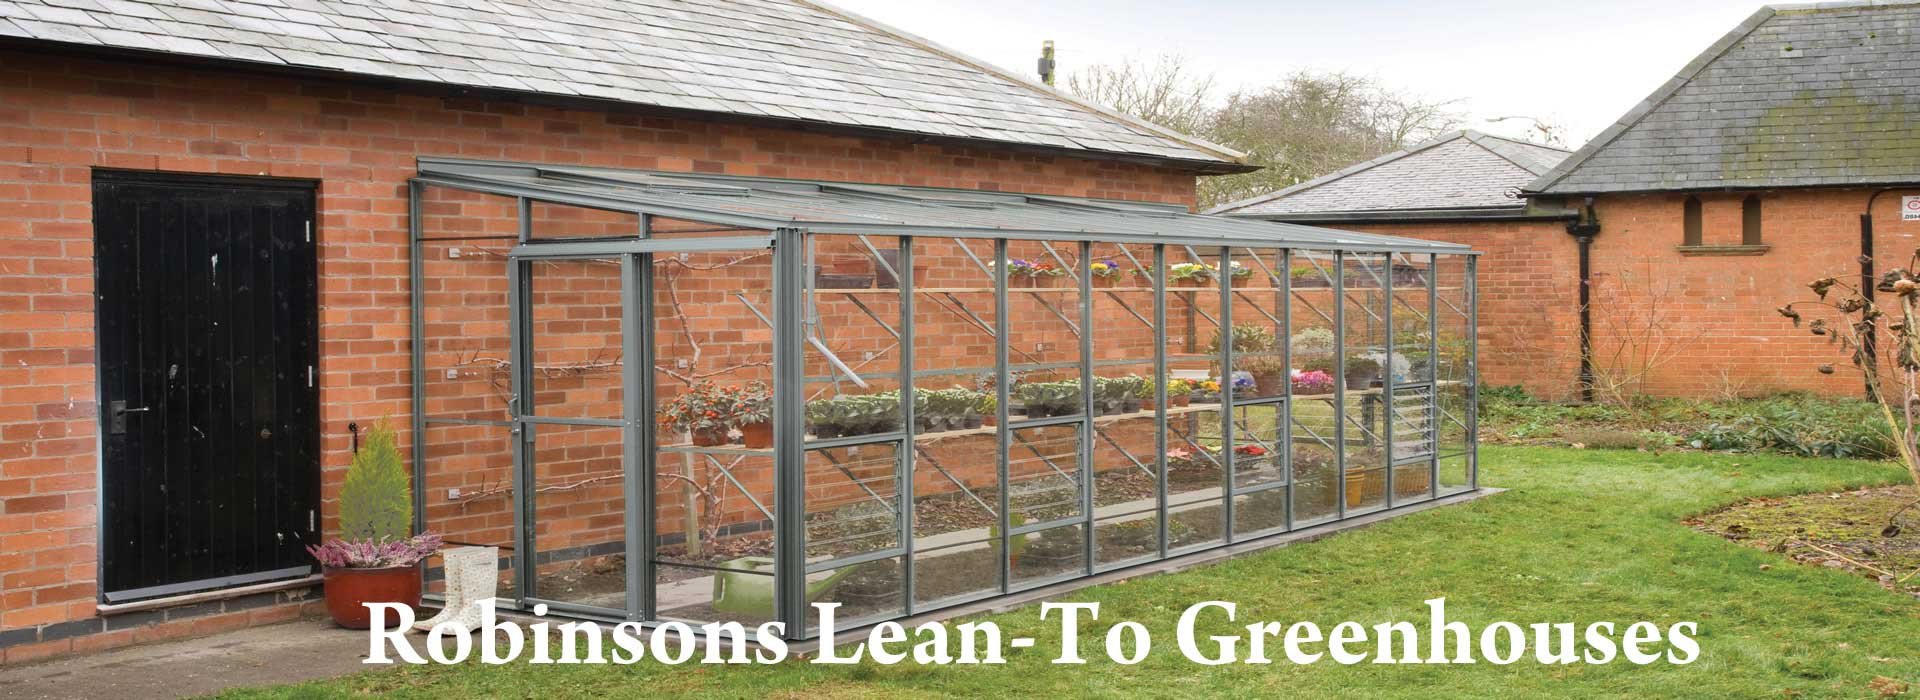 Robinsons-Lean-To-Greenhouses